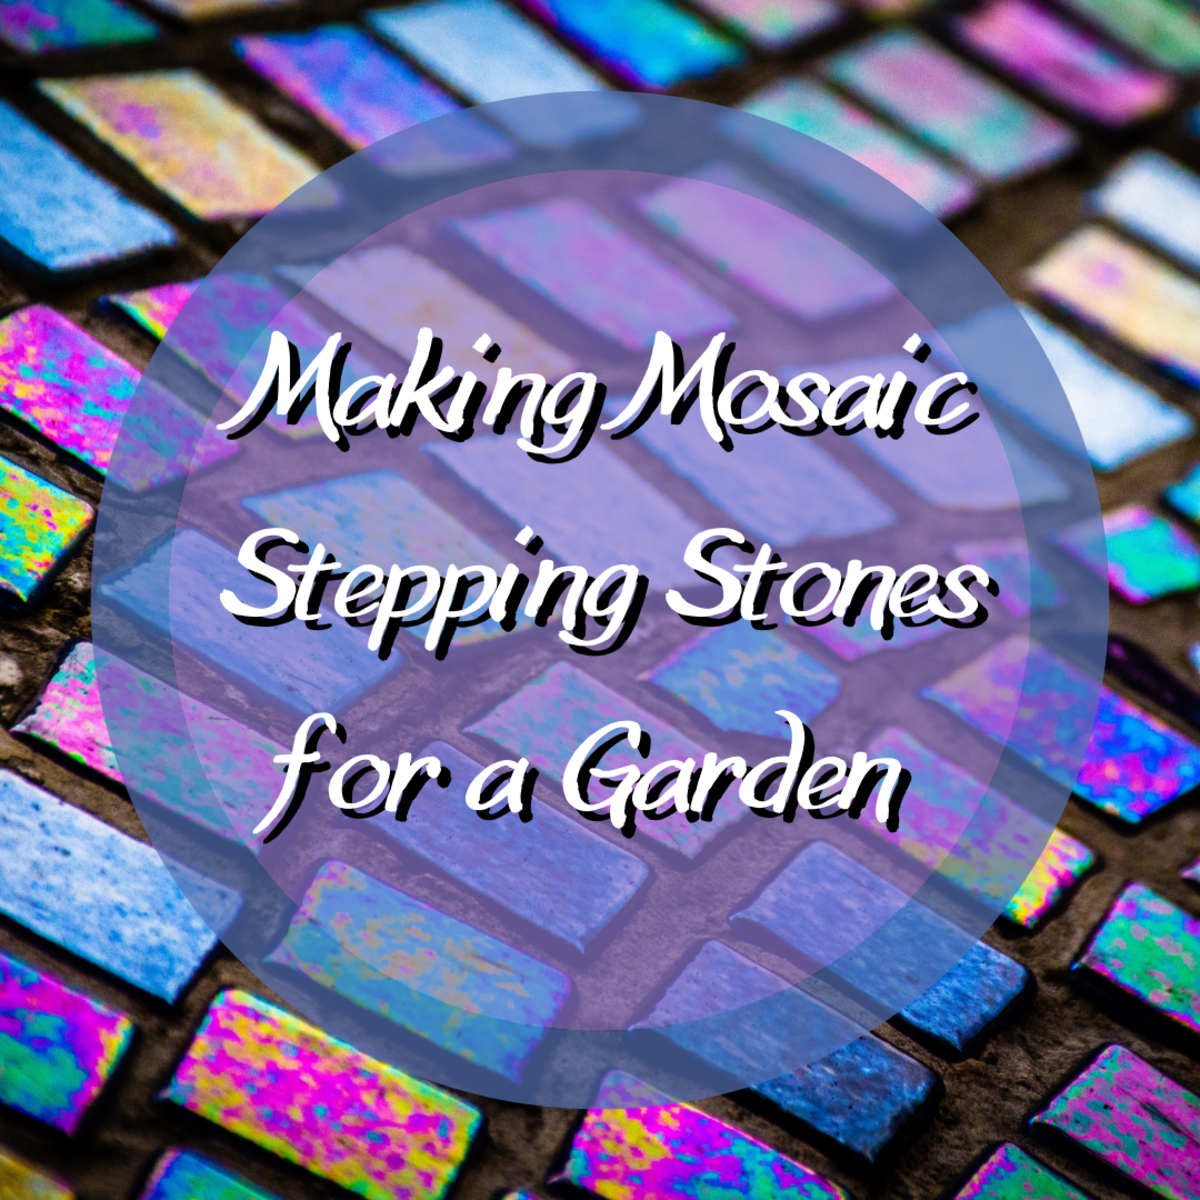 Learn how to create your own mosaic stepping stones to decorate your garden!